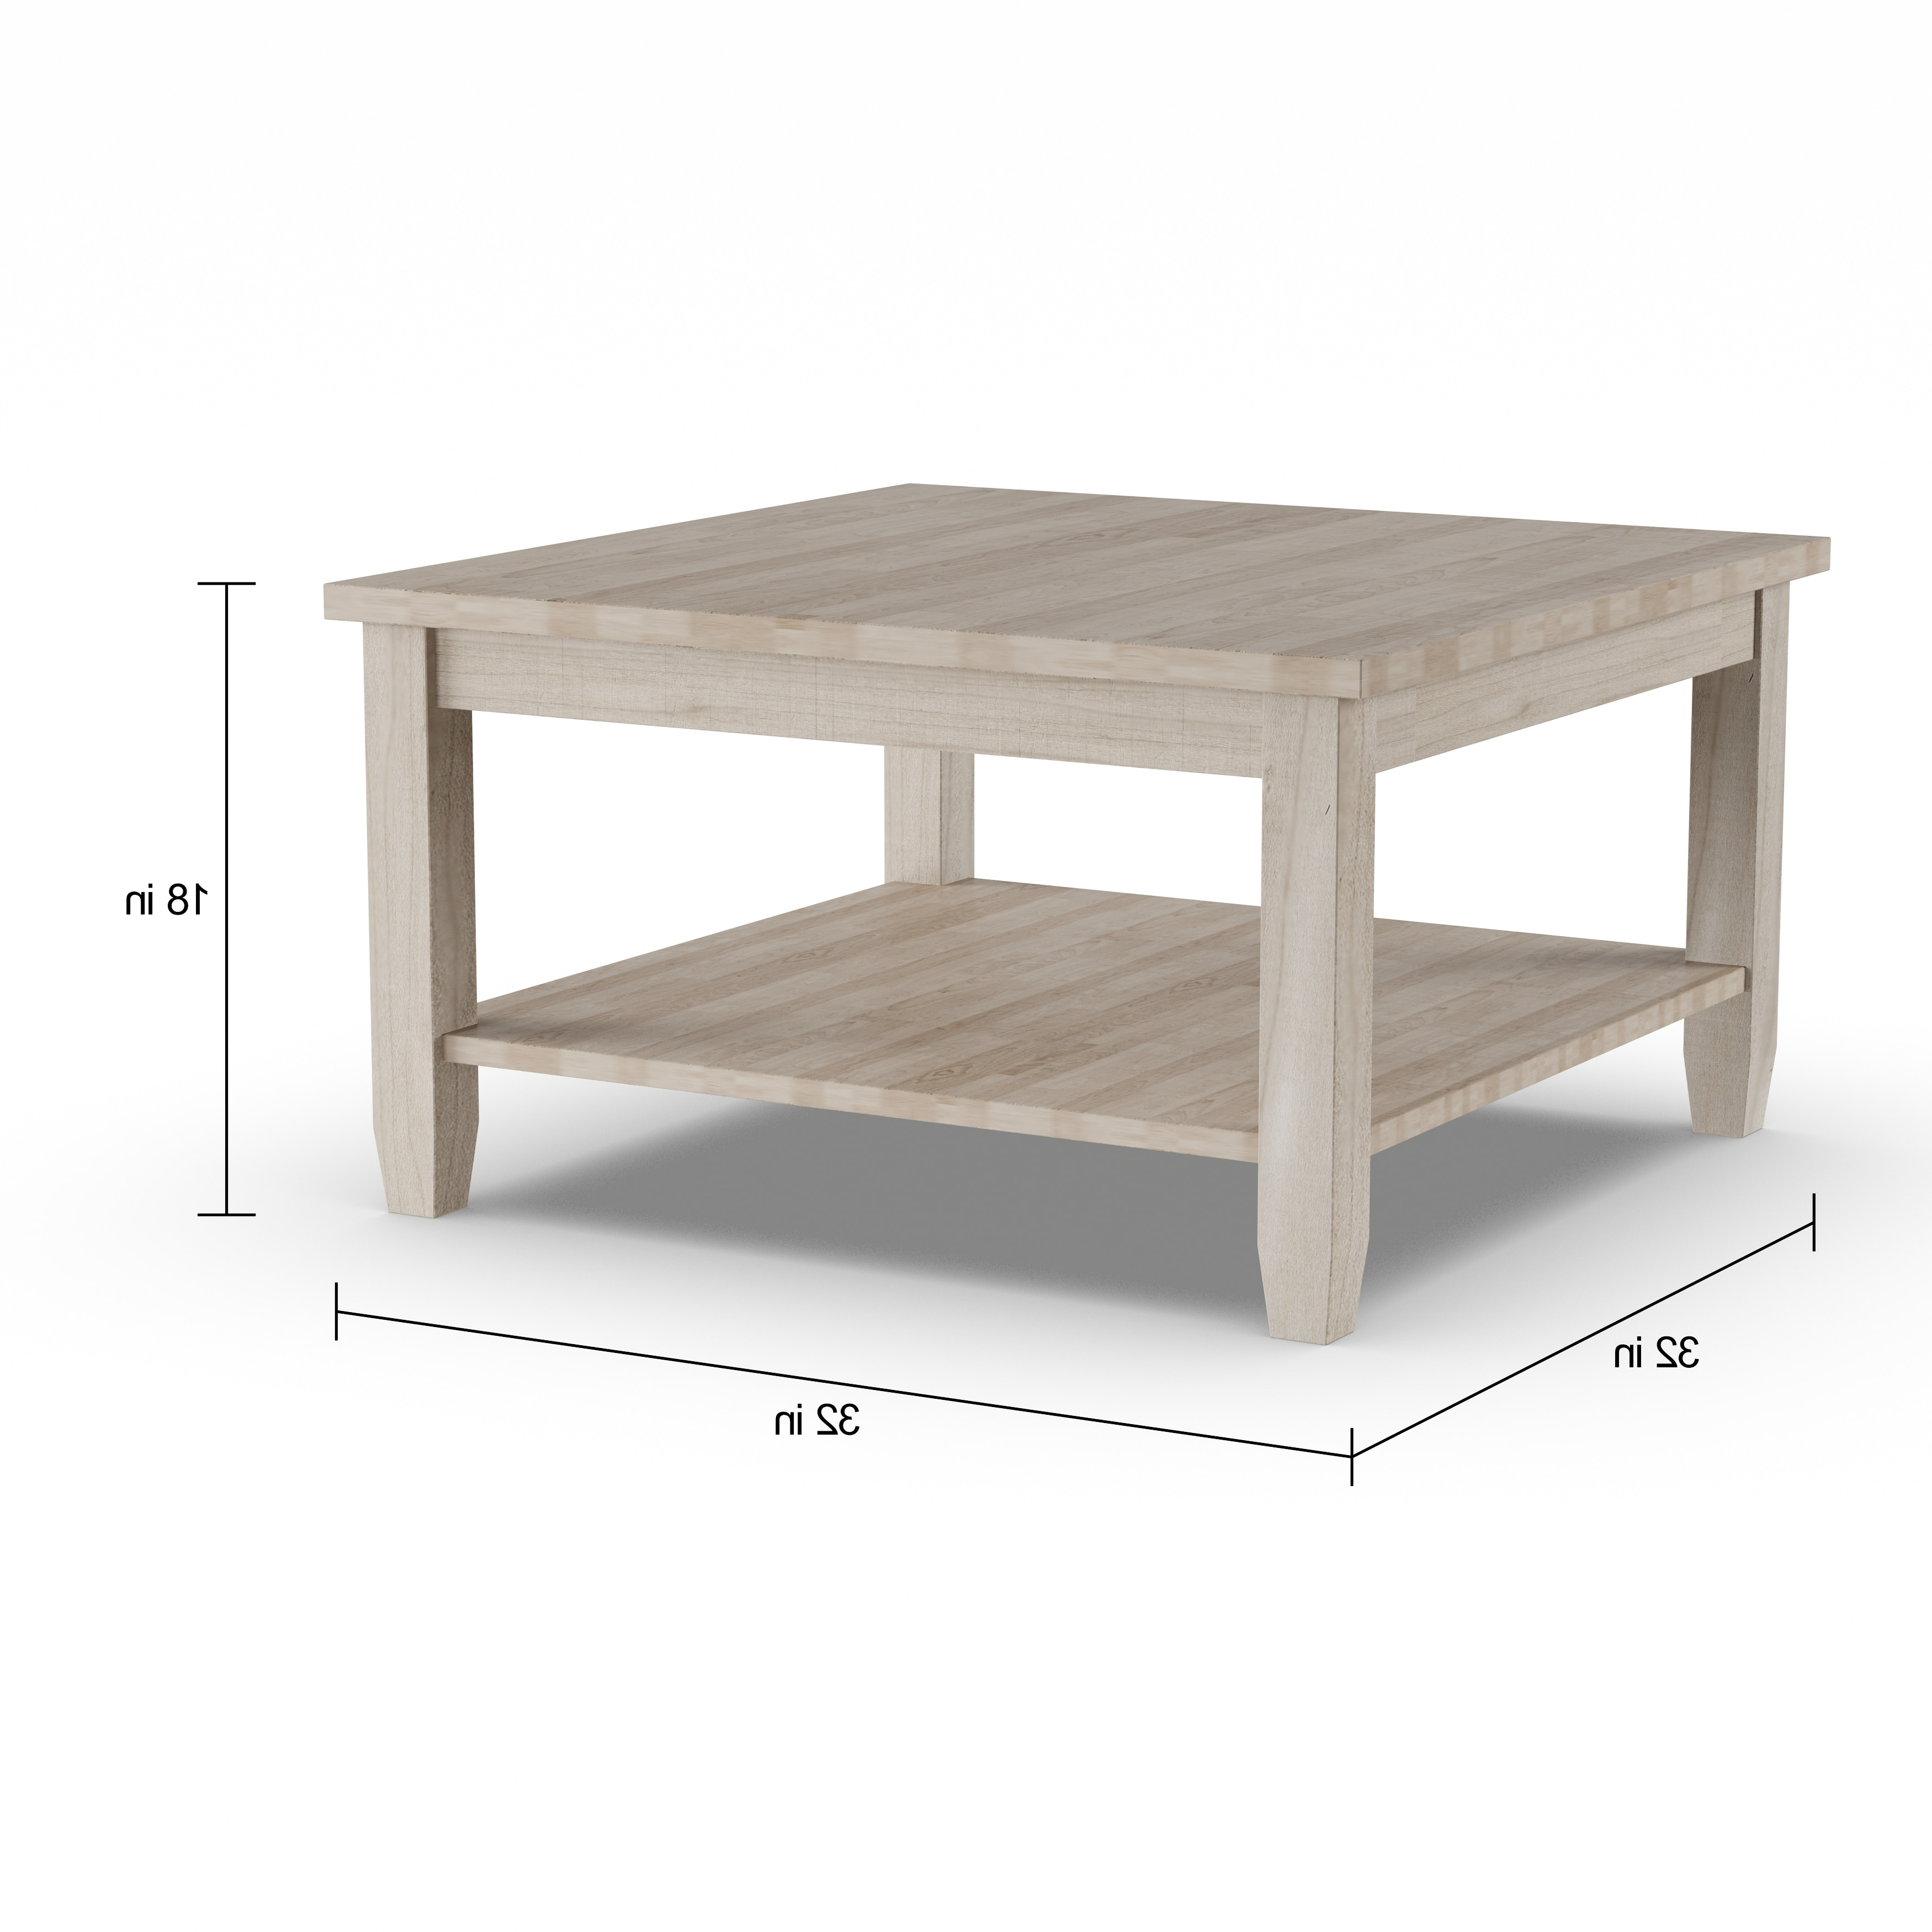 Coffetable ~ Phenomenal Unfinished Coffee Table Ot Vista W In Widely Used Shaker Unfinished Solid Parawood Tall Coffee Tables (View 17 of 20)